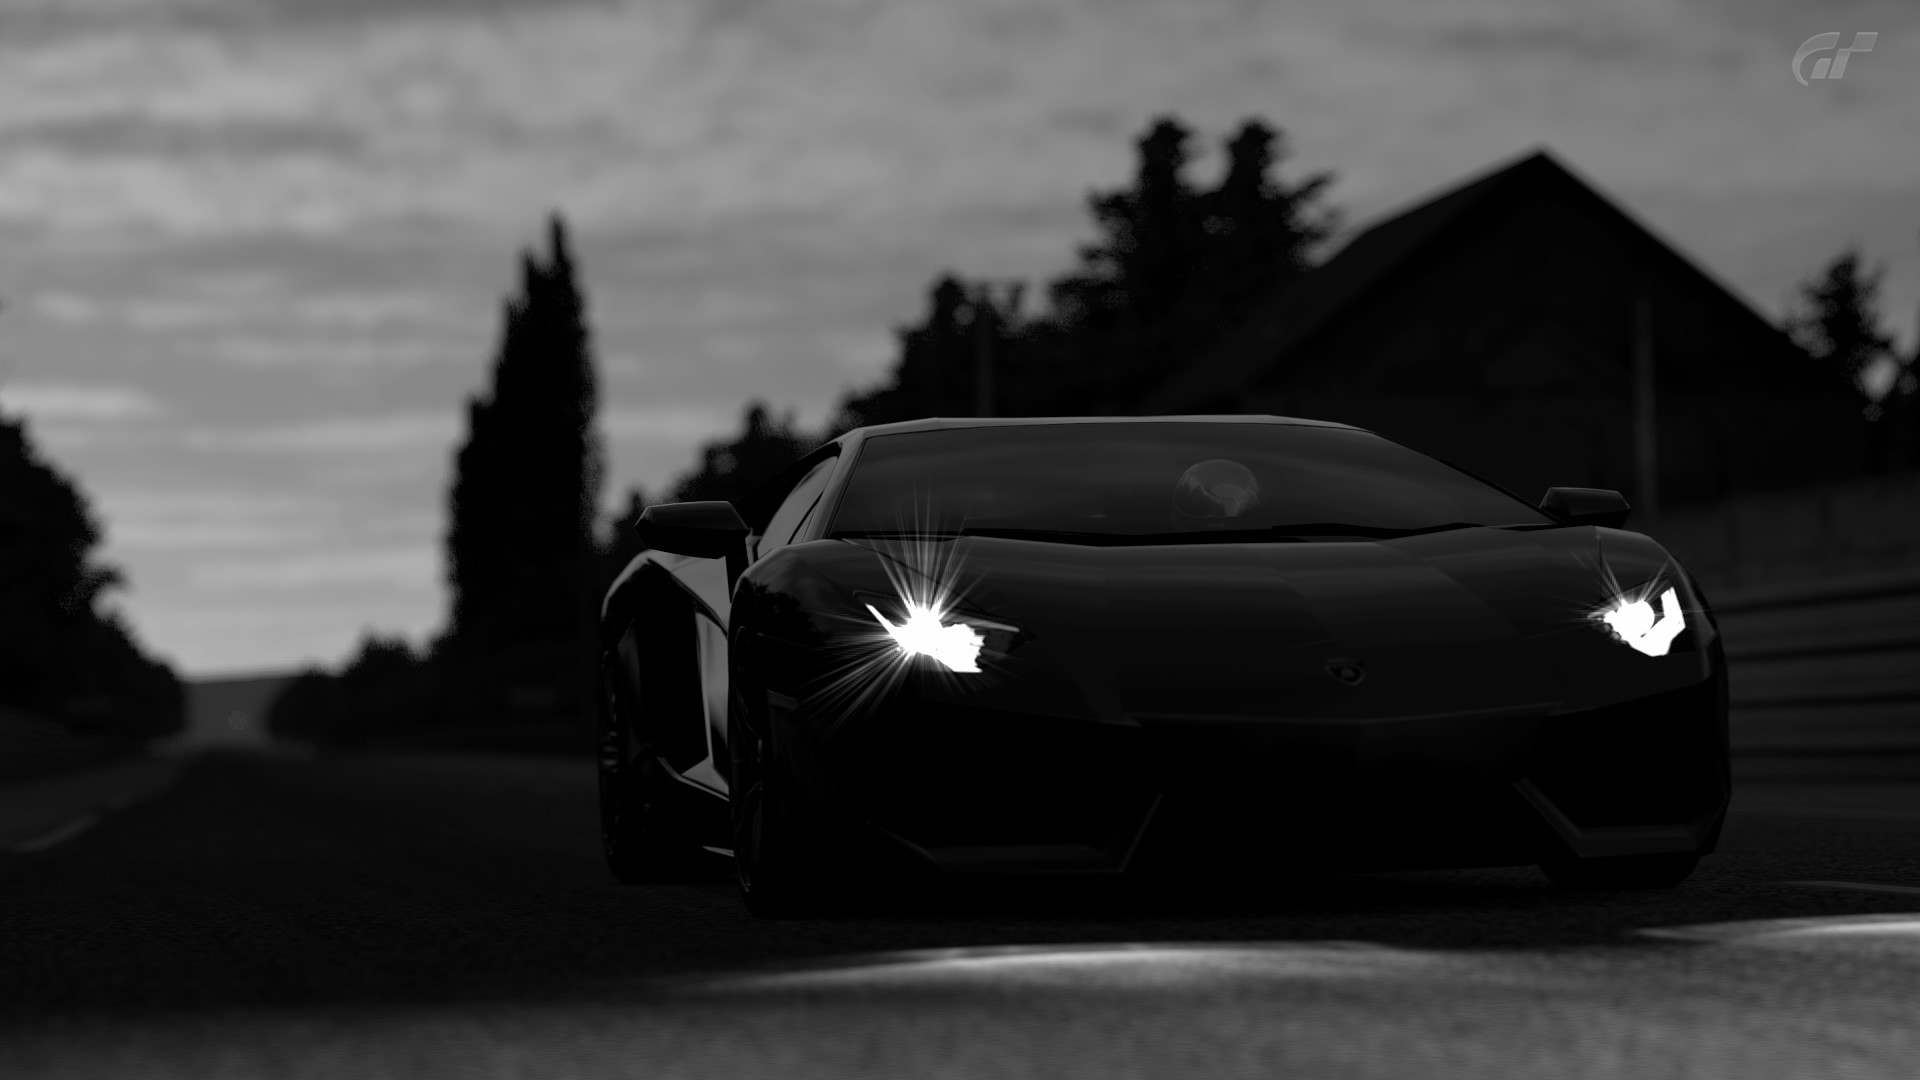 Res: 1920x1080, Dark Black Lamborghini Car Wallpaper HD Free Download